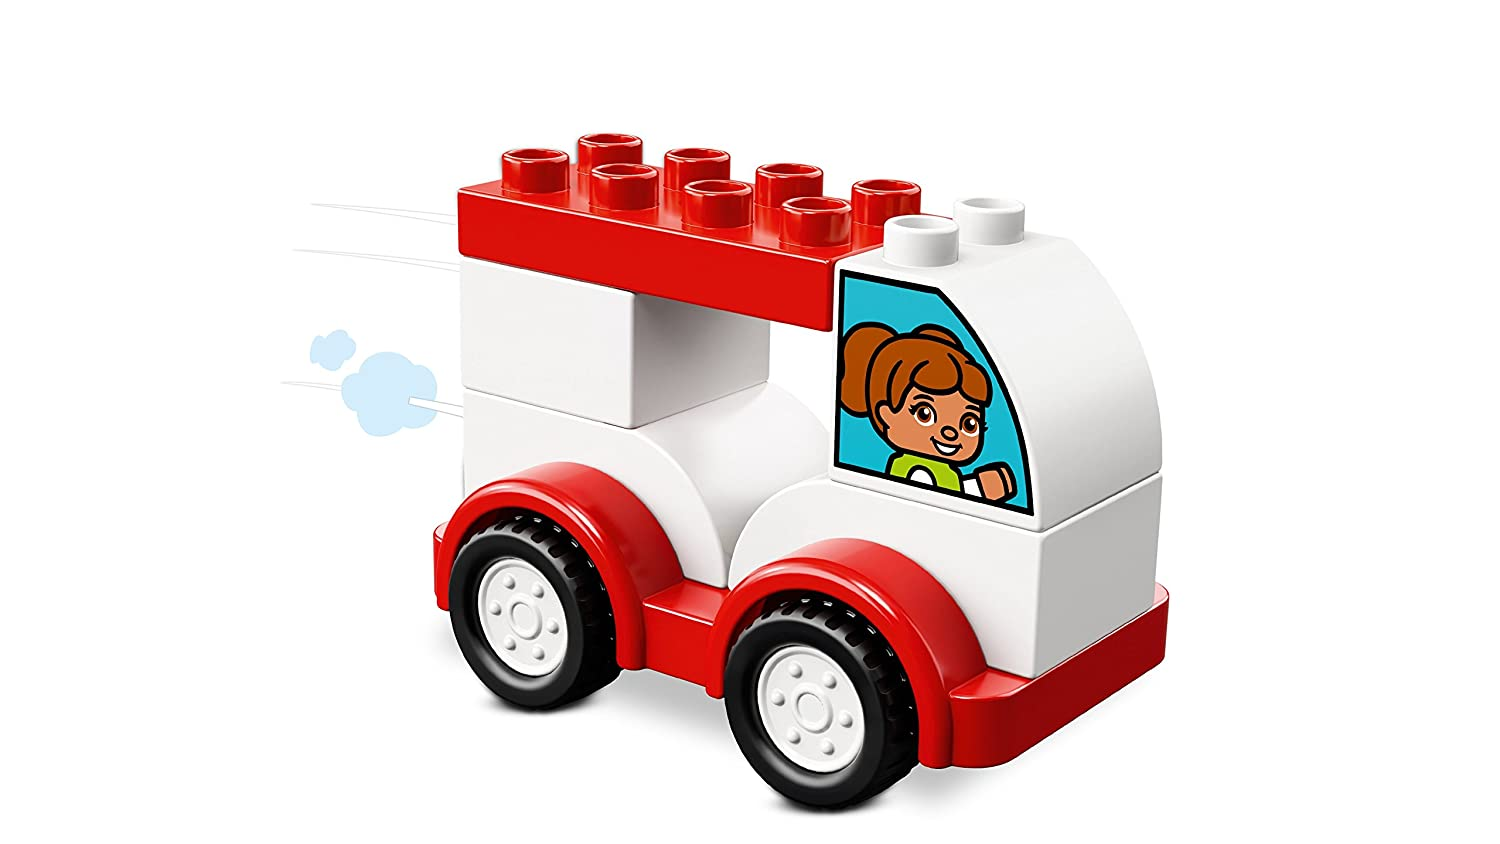 LEGO 10860 Duplo My First Race Car: Amazon.co.uk: Toys & Games